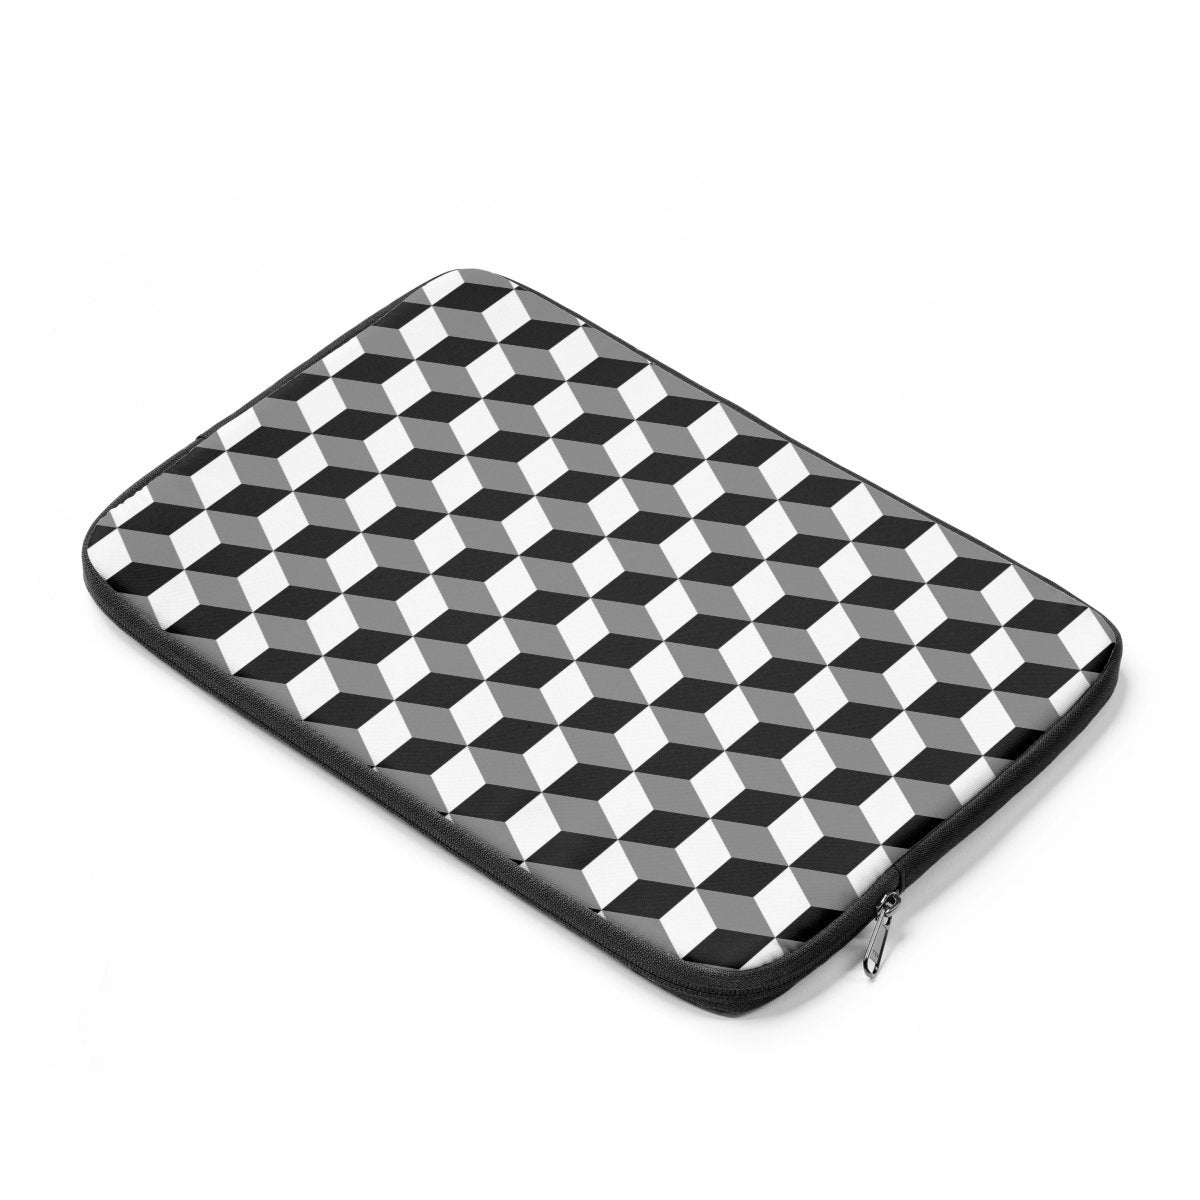 Polka dots minimalist Laptop Sleeve-Tech - Accessories - Laptop Sleeves-Printify-Très Elite